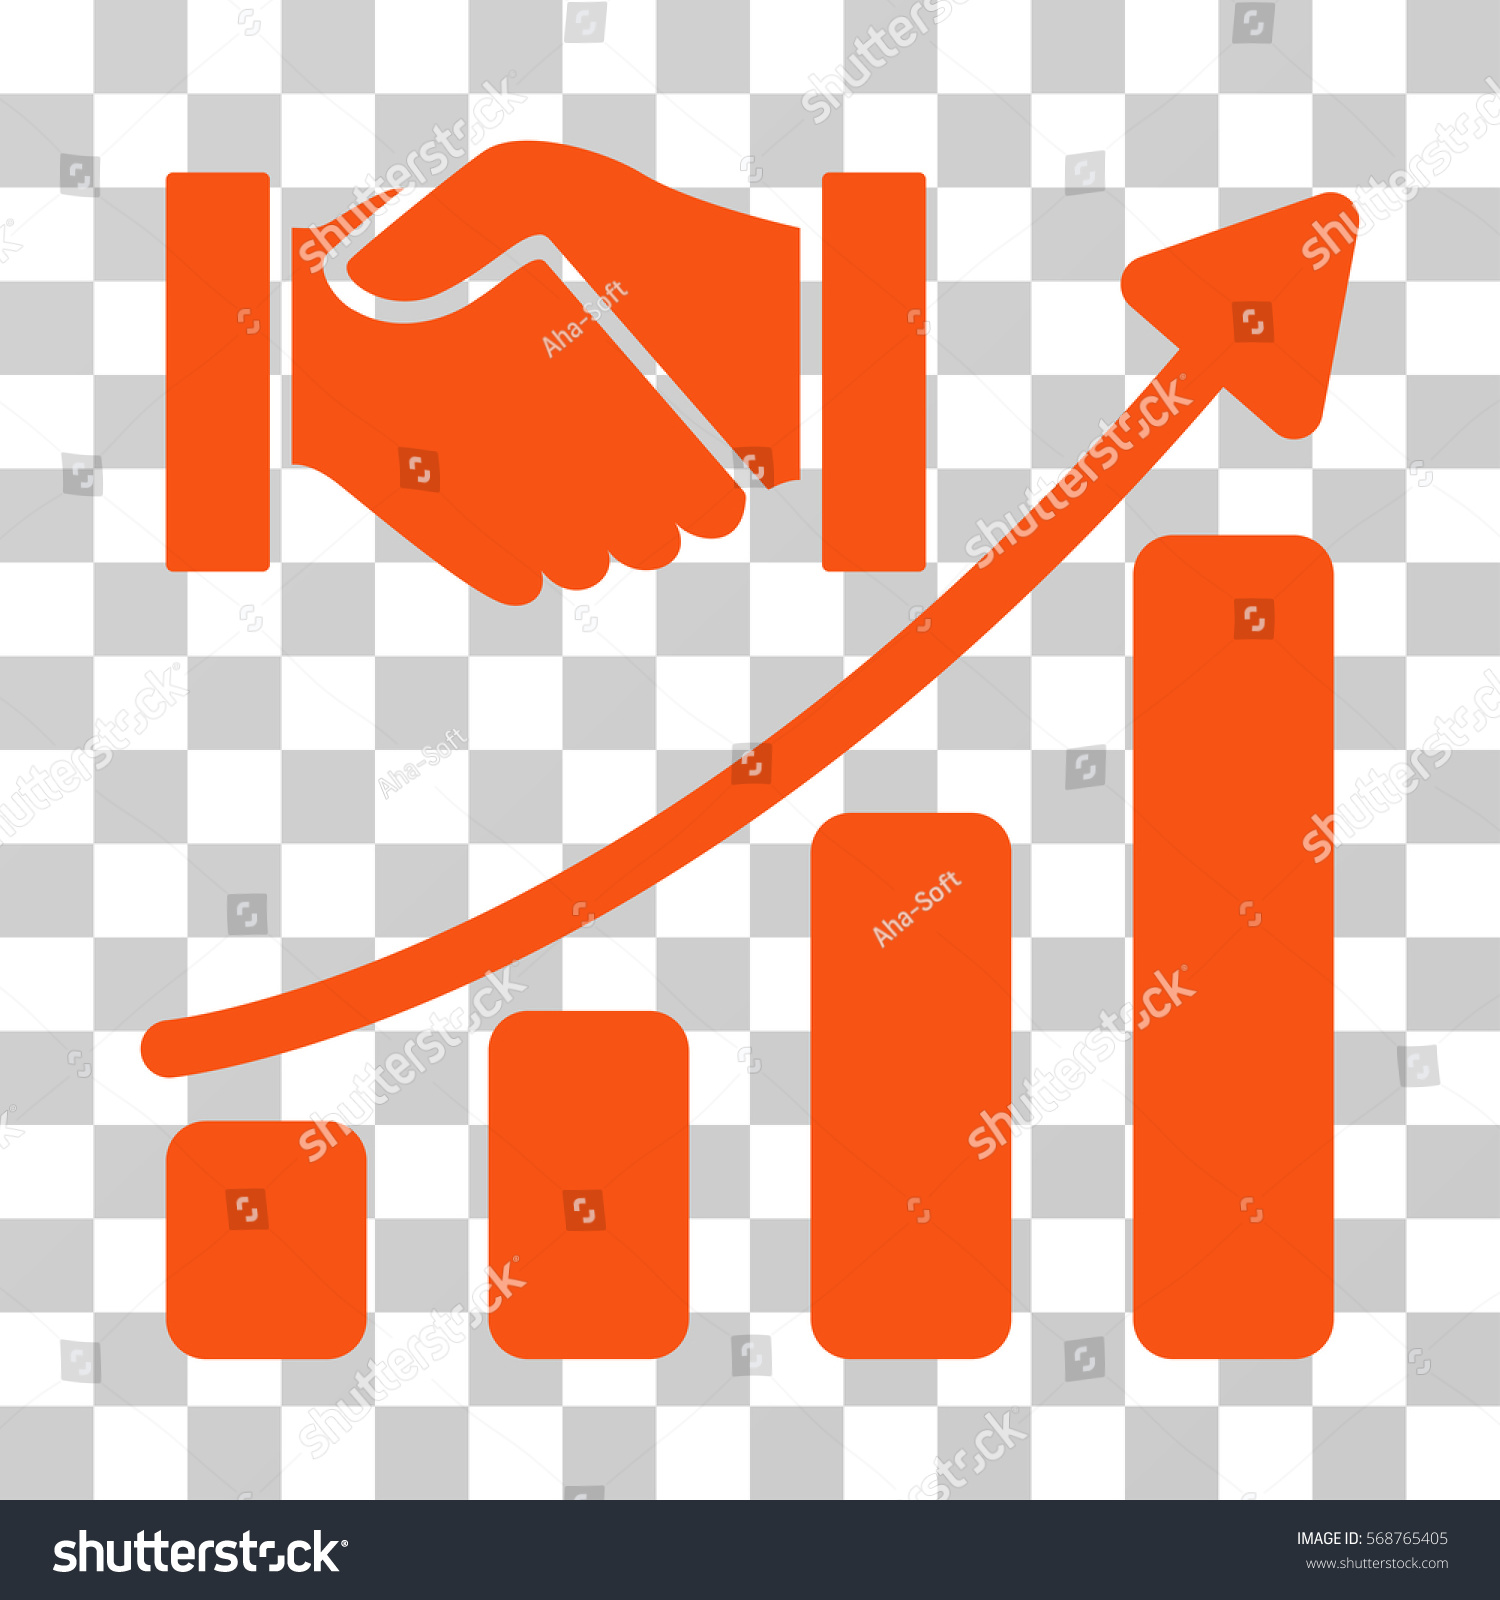 Acquisition hands growth chart icon vector stock vector 568765405 acquisition hands growth chart icon vector illustration style is flat iconic symbol orange color nvjuhfo Images